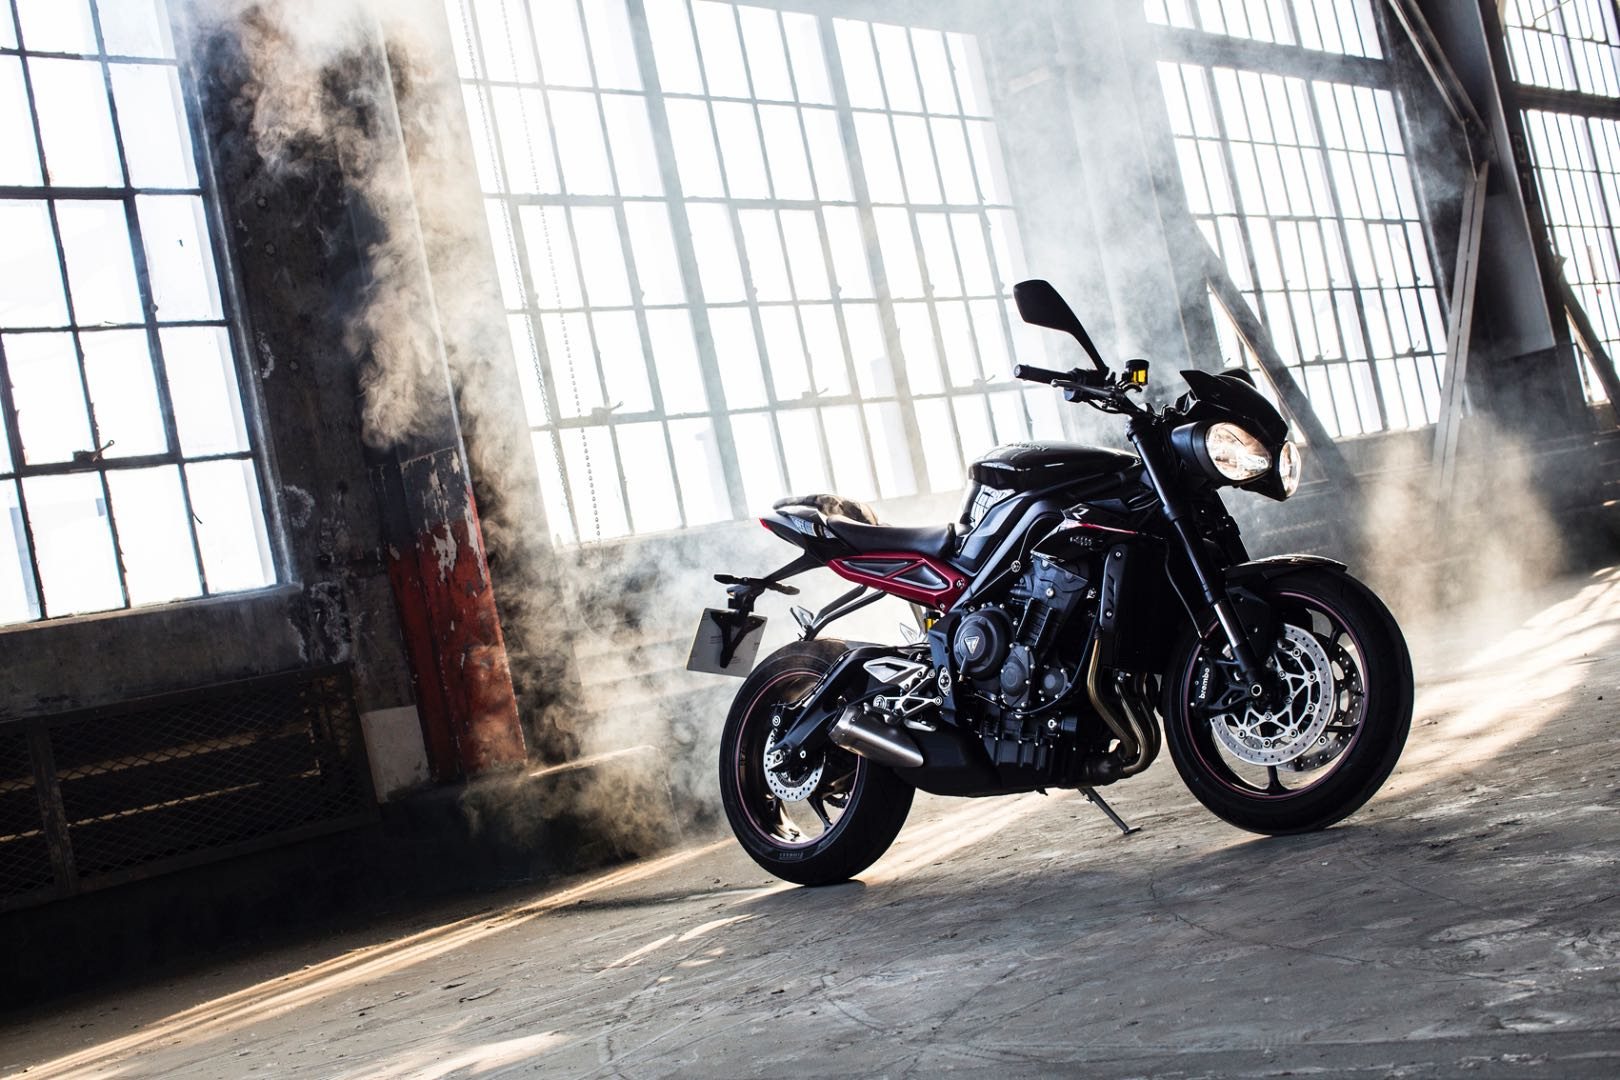 2017 Triumph Street Triple Rs Launch Live Streaming Watch Online